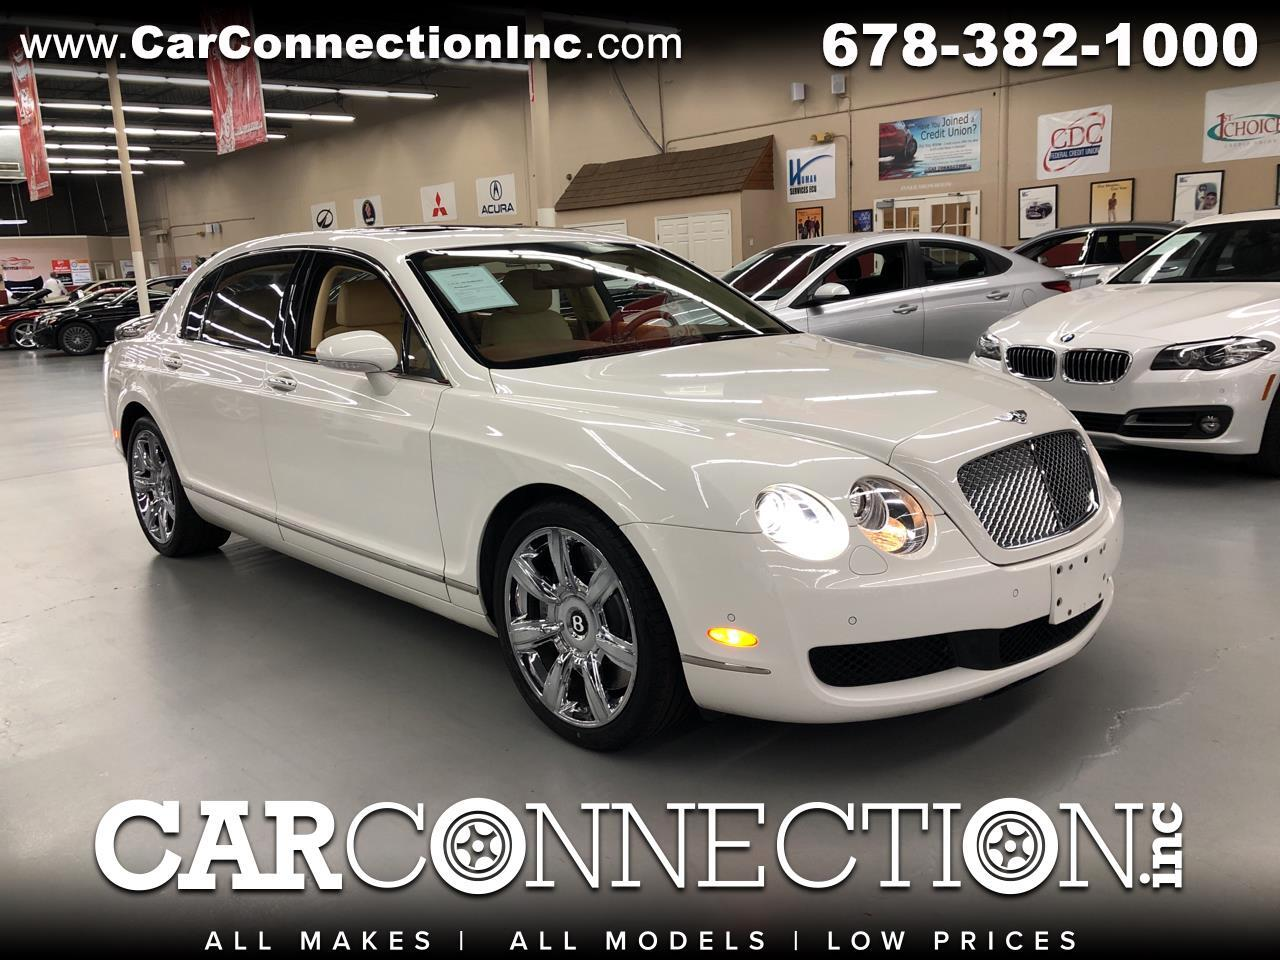 2007 Bentley Continental Flying Spur W12